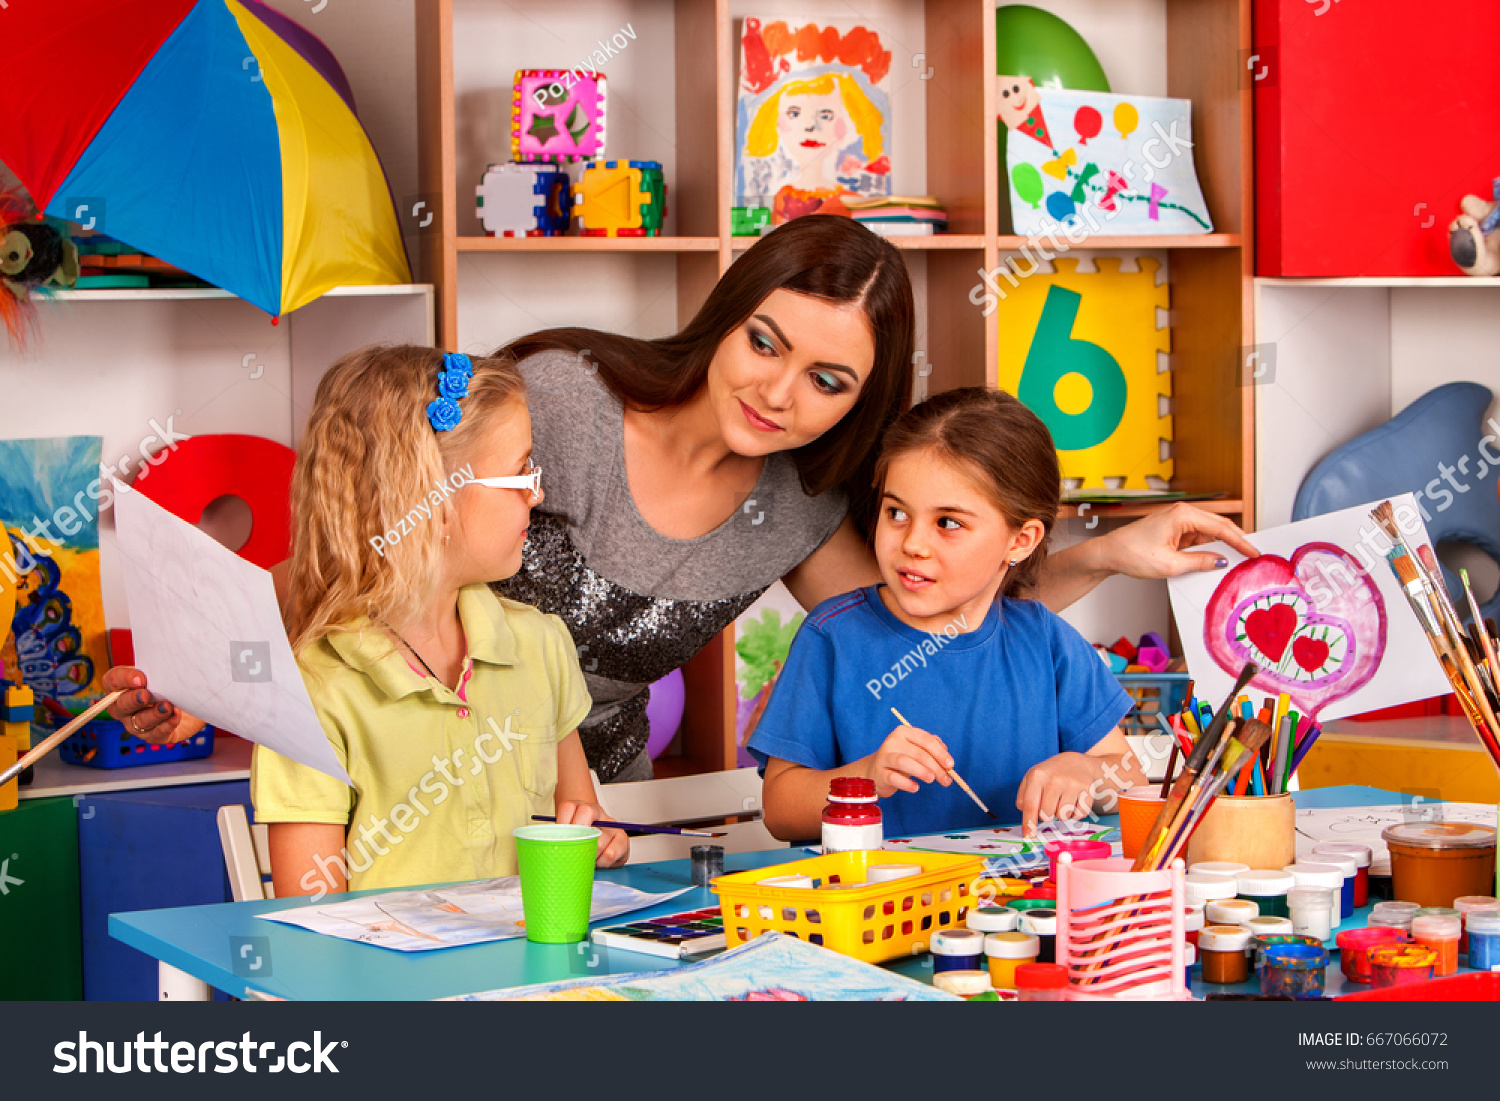 Kids Playroom Organization Children Painting Drawing Stock Photo ...